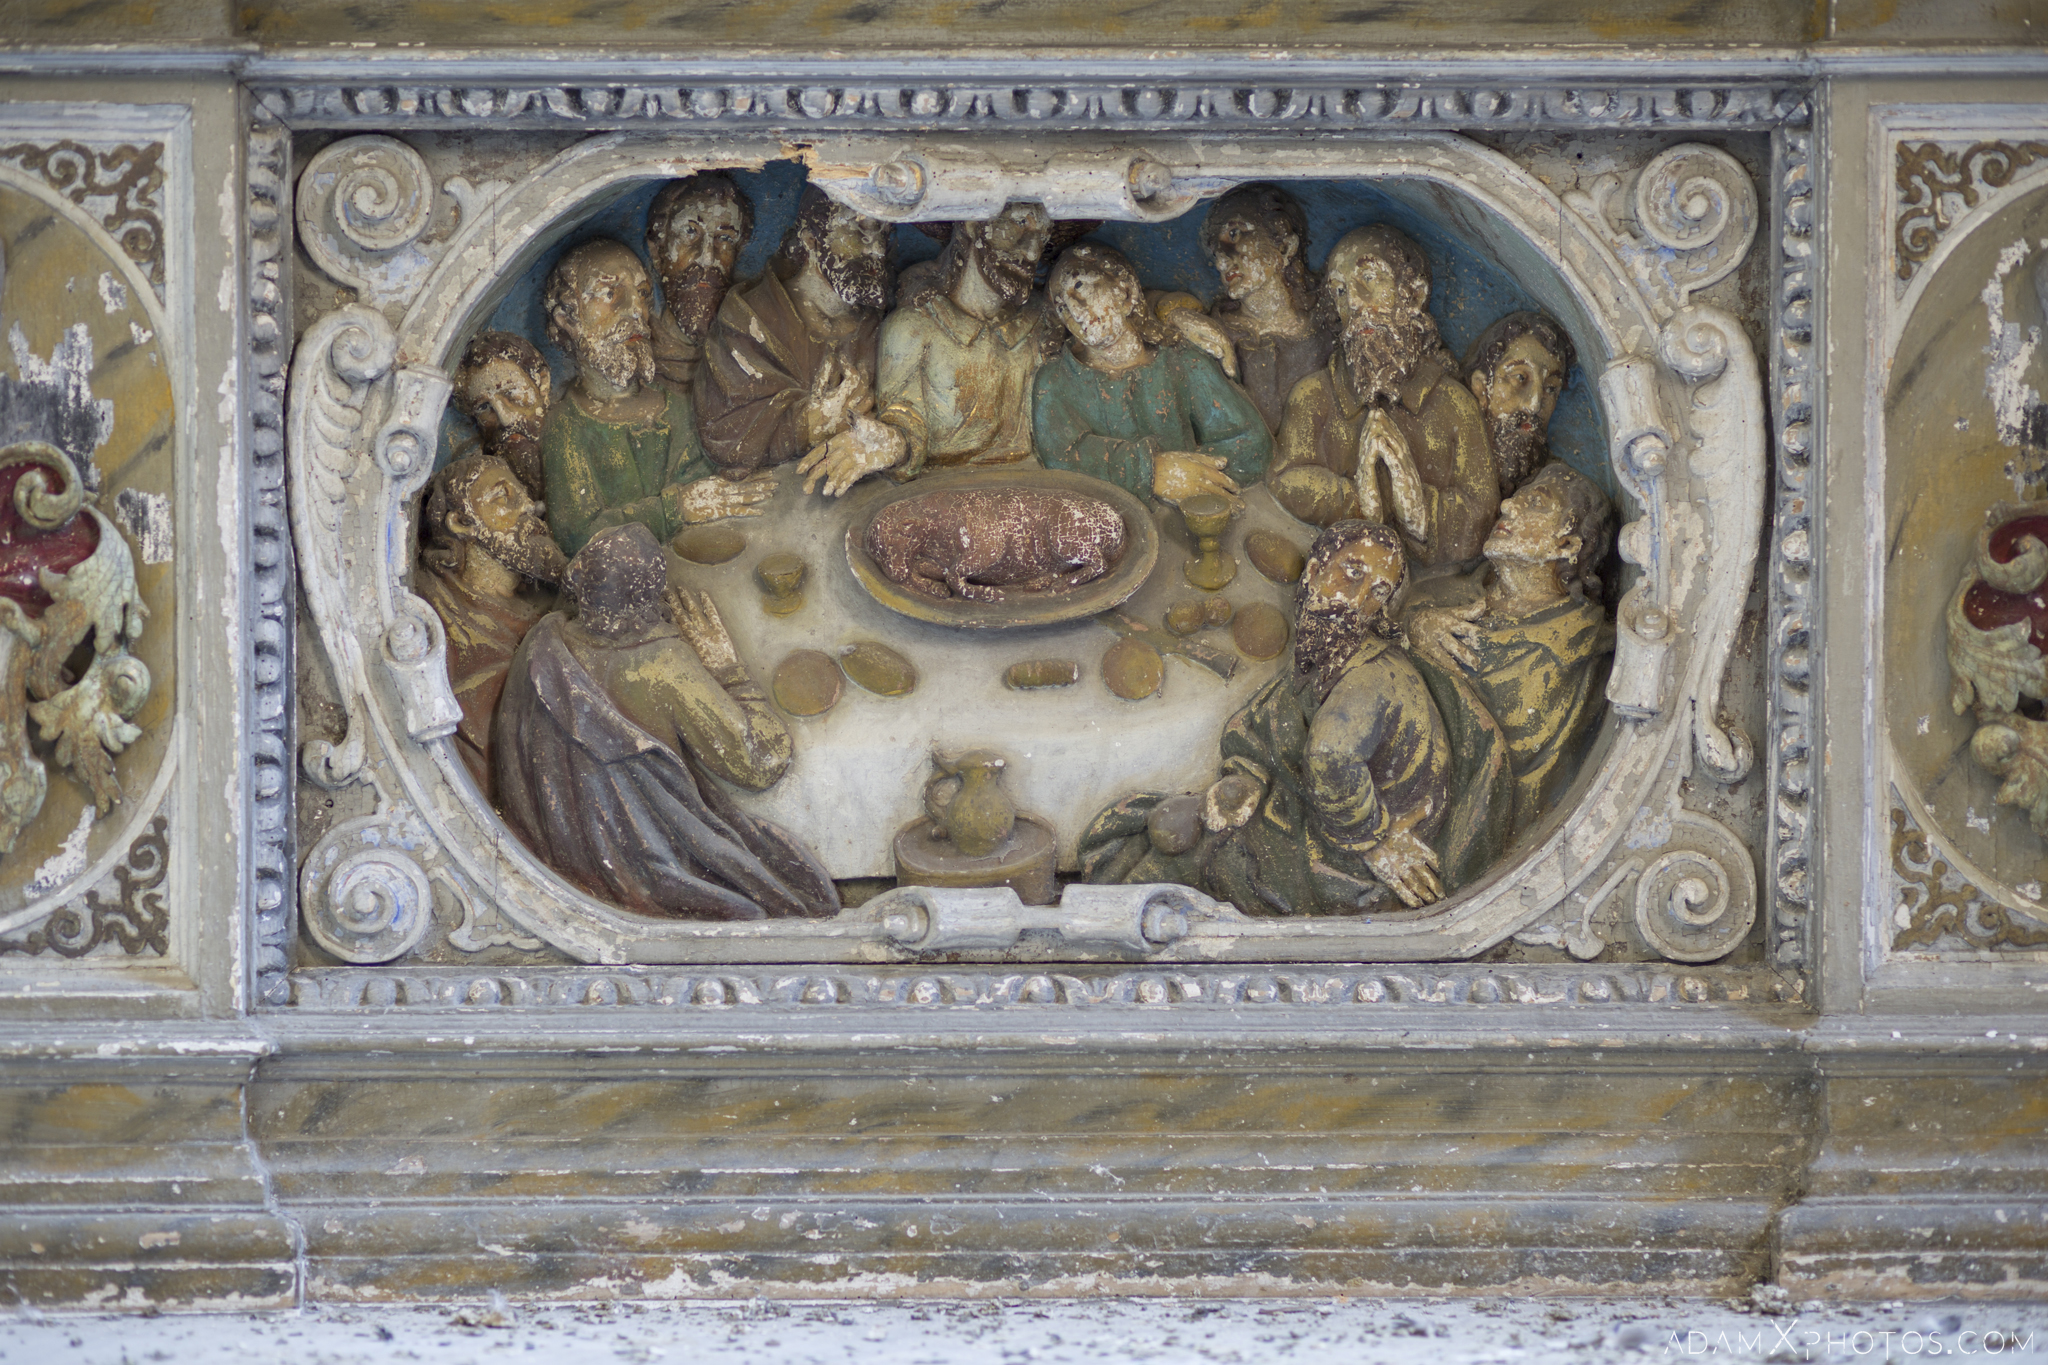 Christ Jesus disciples supper ornate fresco detail Chapel B Church Urbex Poland Adam X Urban Exploration Permission Visit Access 2016 Abandoned decay lost forgotten derelict location haunting eerie